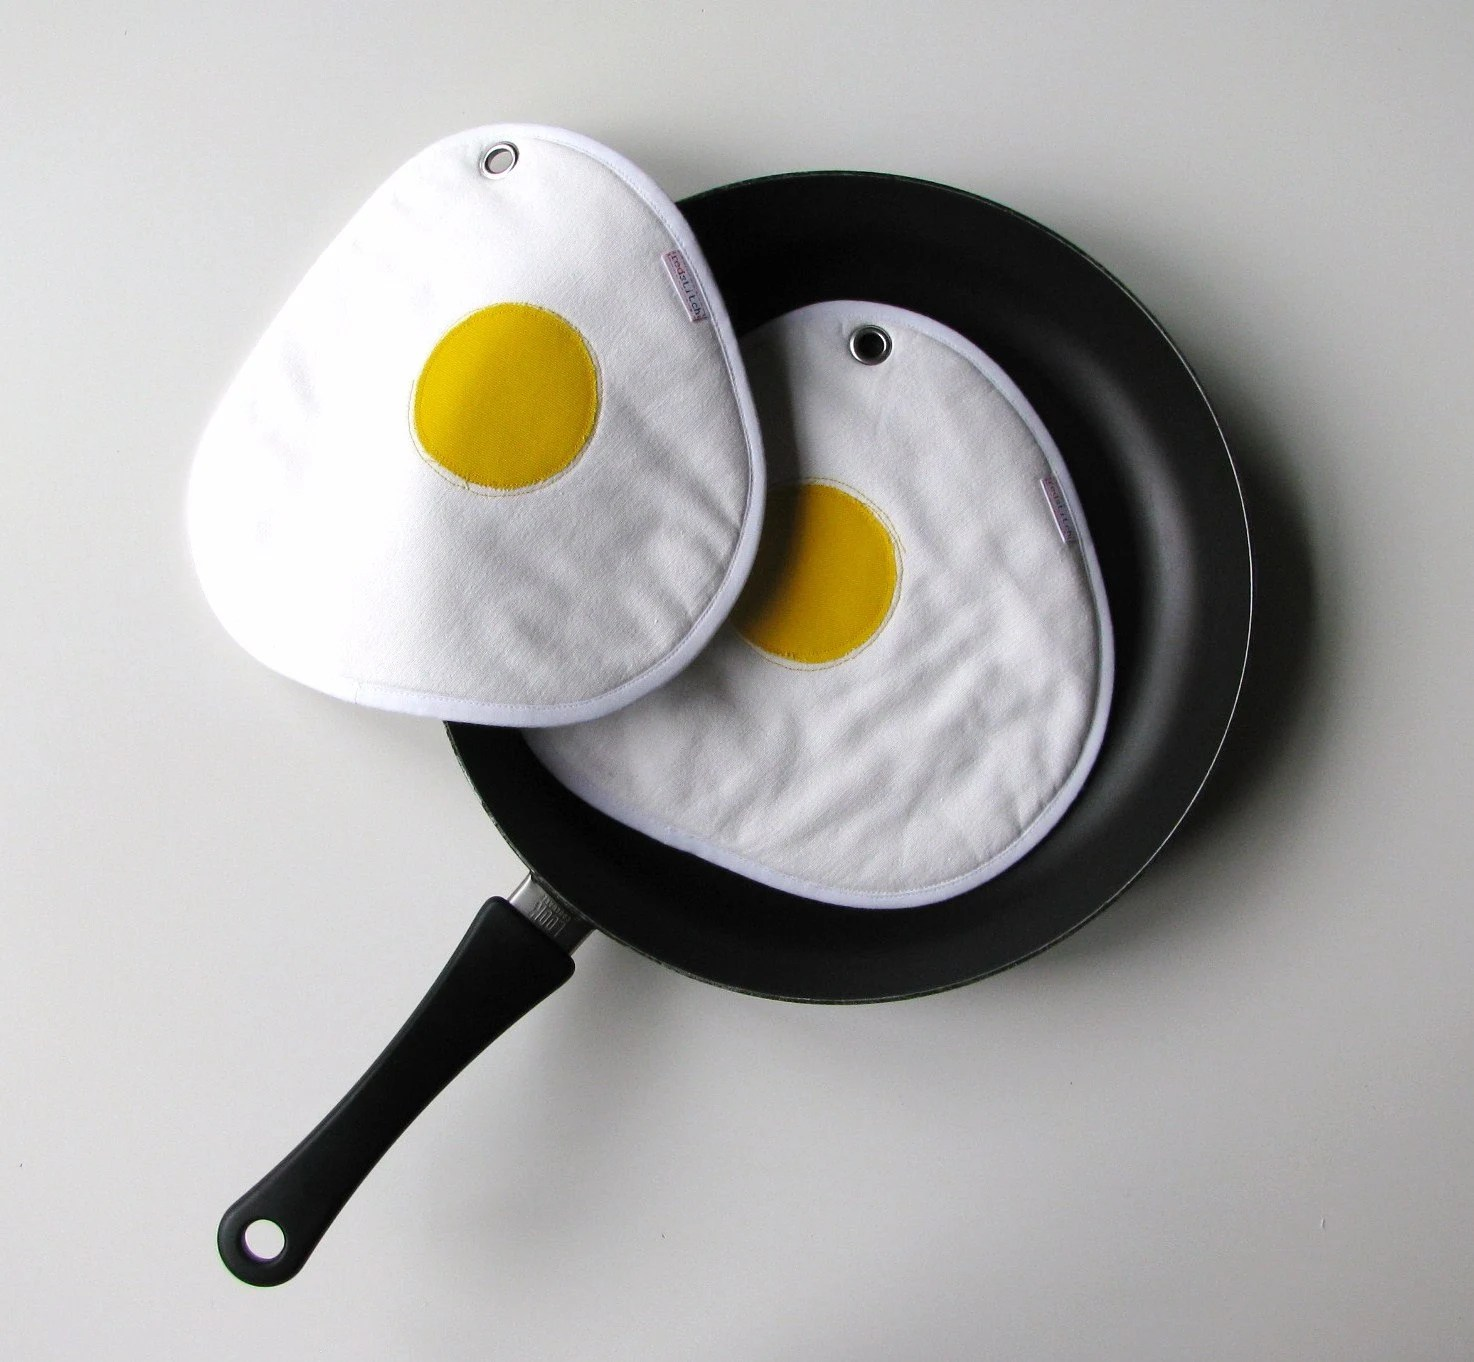 fried eggs pair of fun potholders - sunny side up - white - made to order - xxxRedStitcHxxx